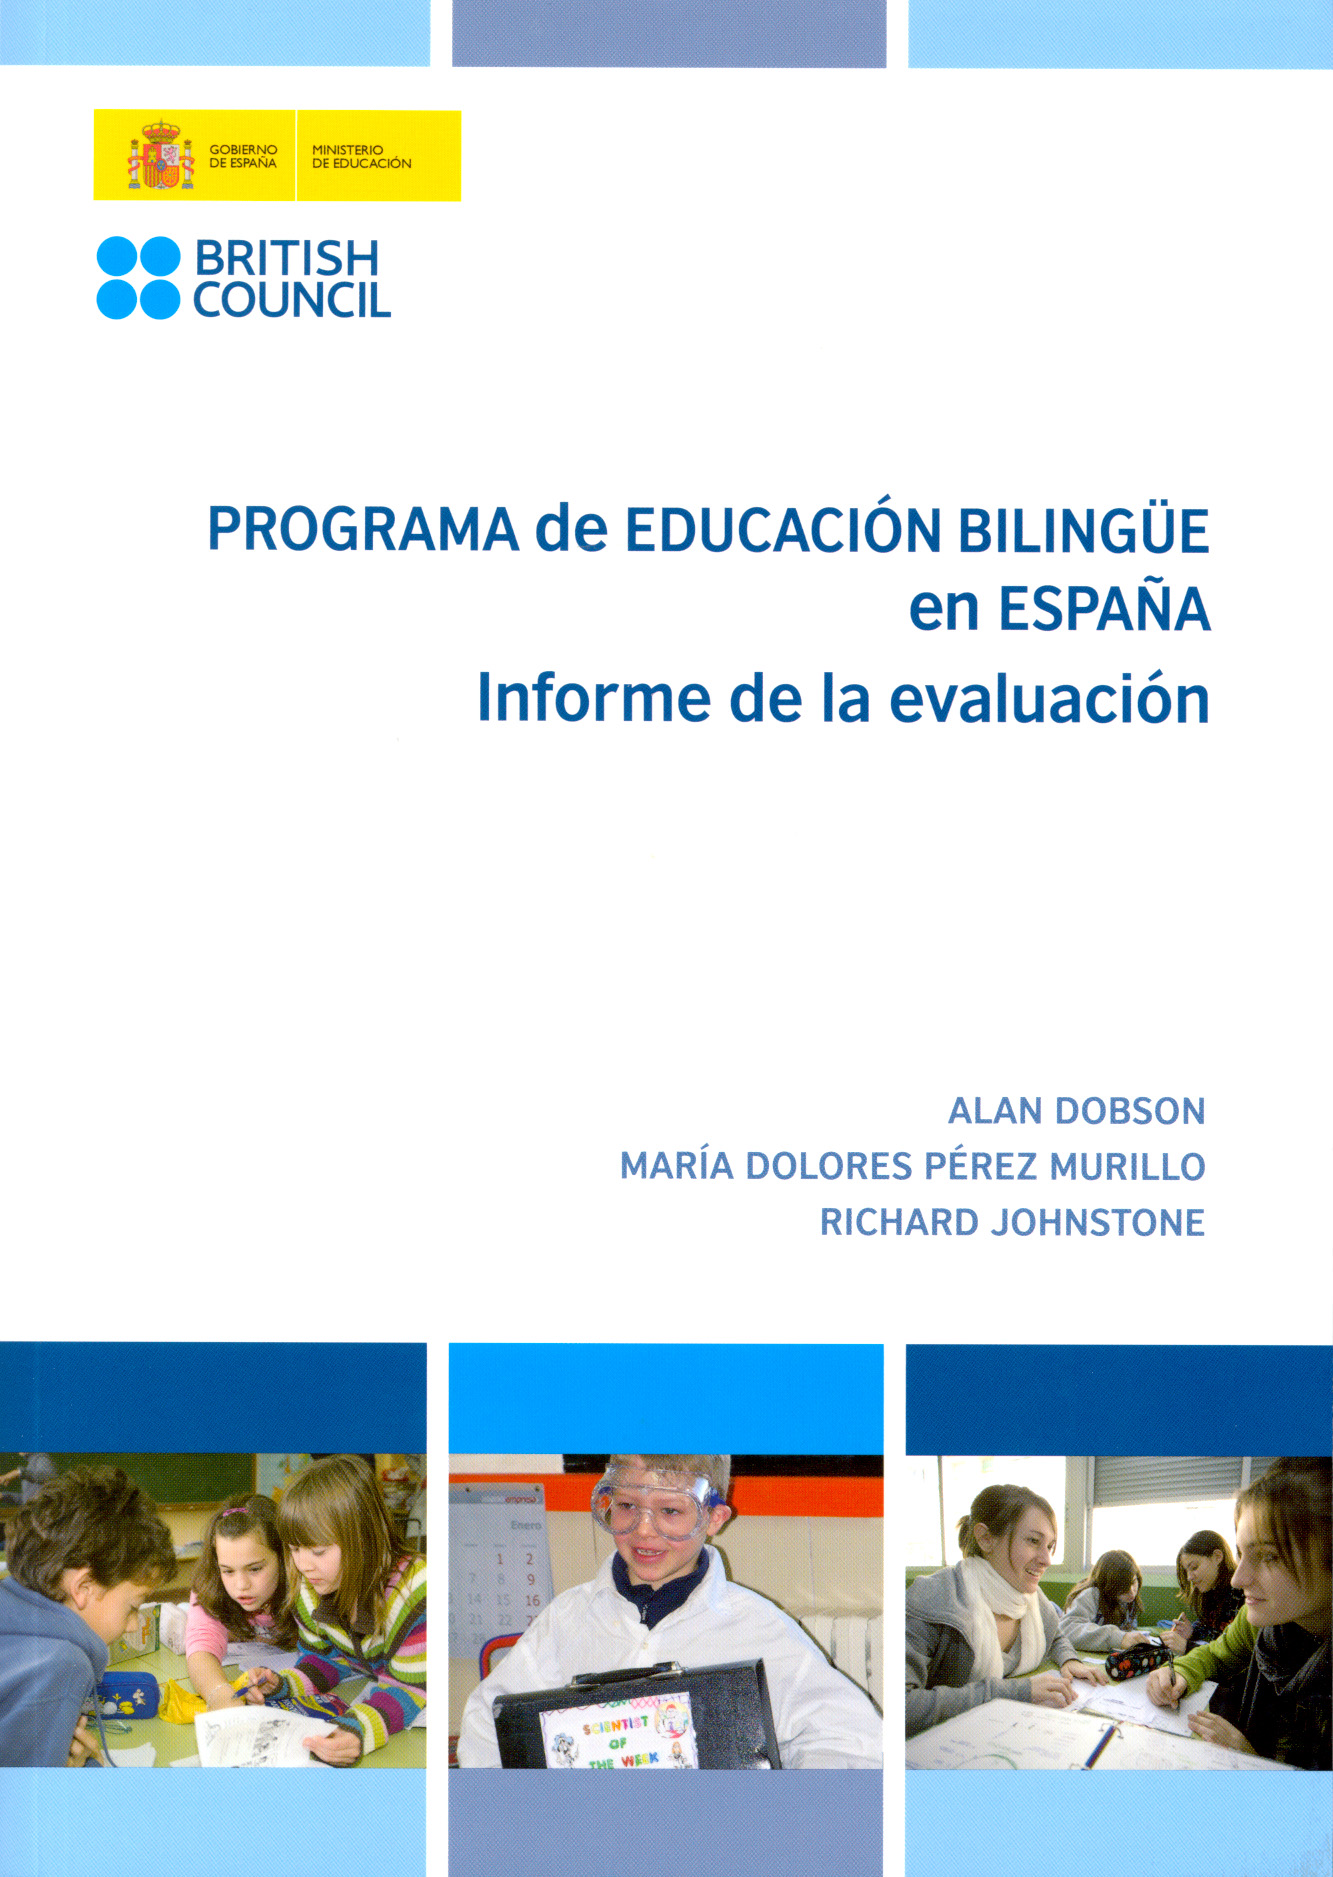 programa-de-educacion-bilinge-en-espana-informe-de-la-evaluacion--bilingual-education-project-spain-evaluation-report